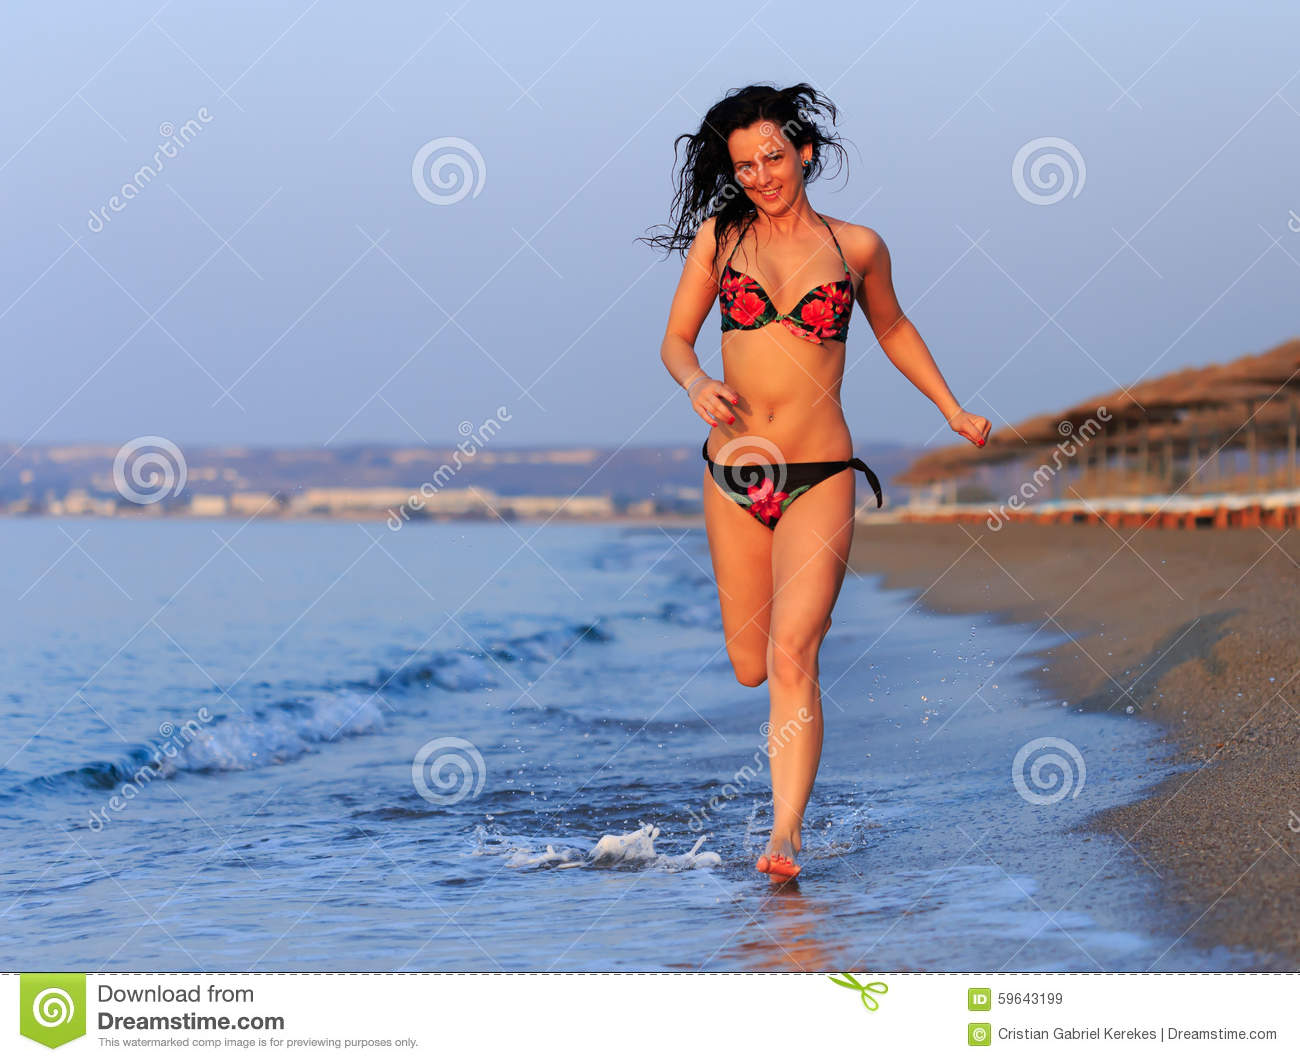 happy-woman-swimsuit-running-beach-sunrise-59643199.jpg